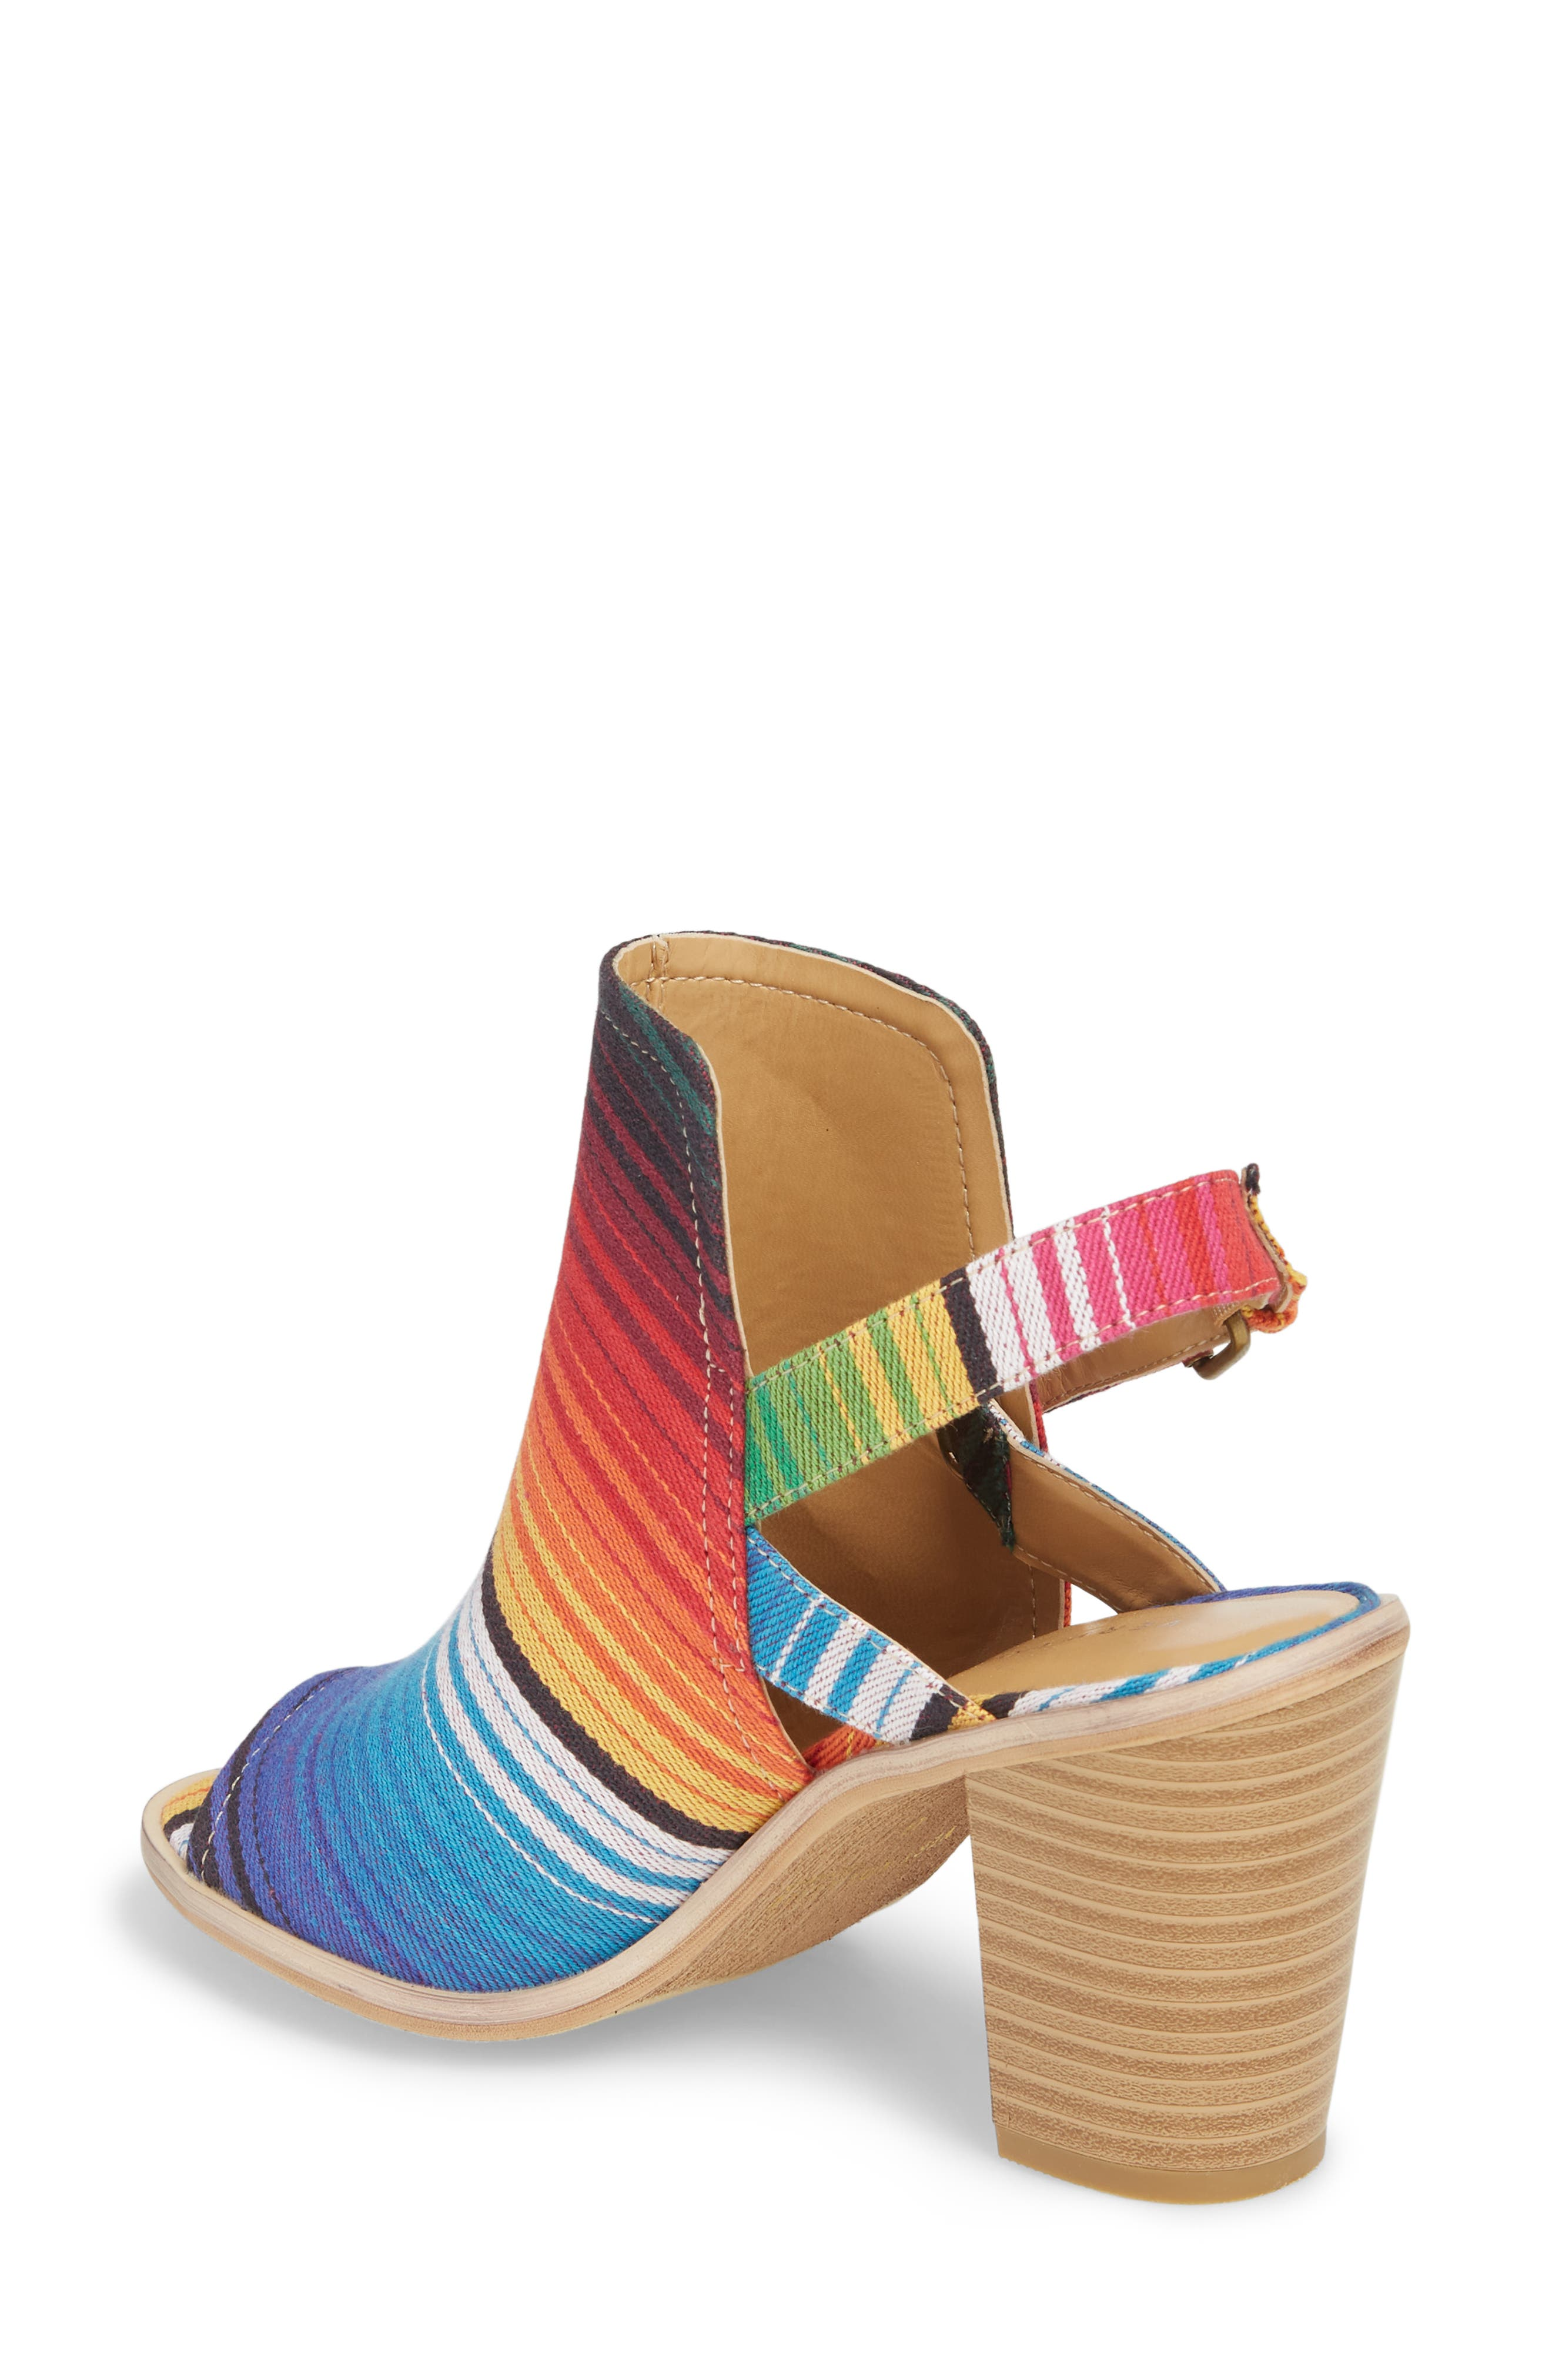 Kerstin Sandal,                             Alternate thumbnail 2, color,                             Serape